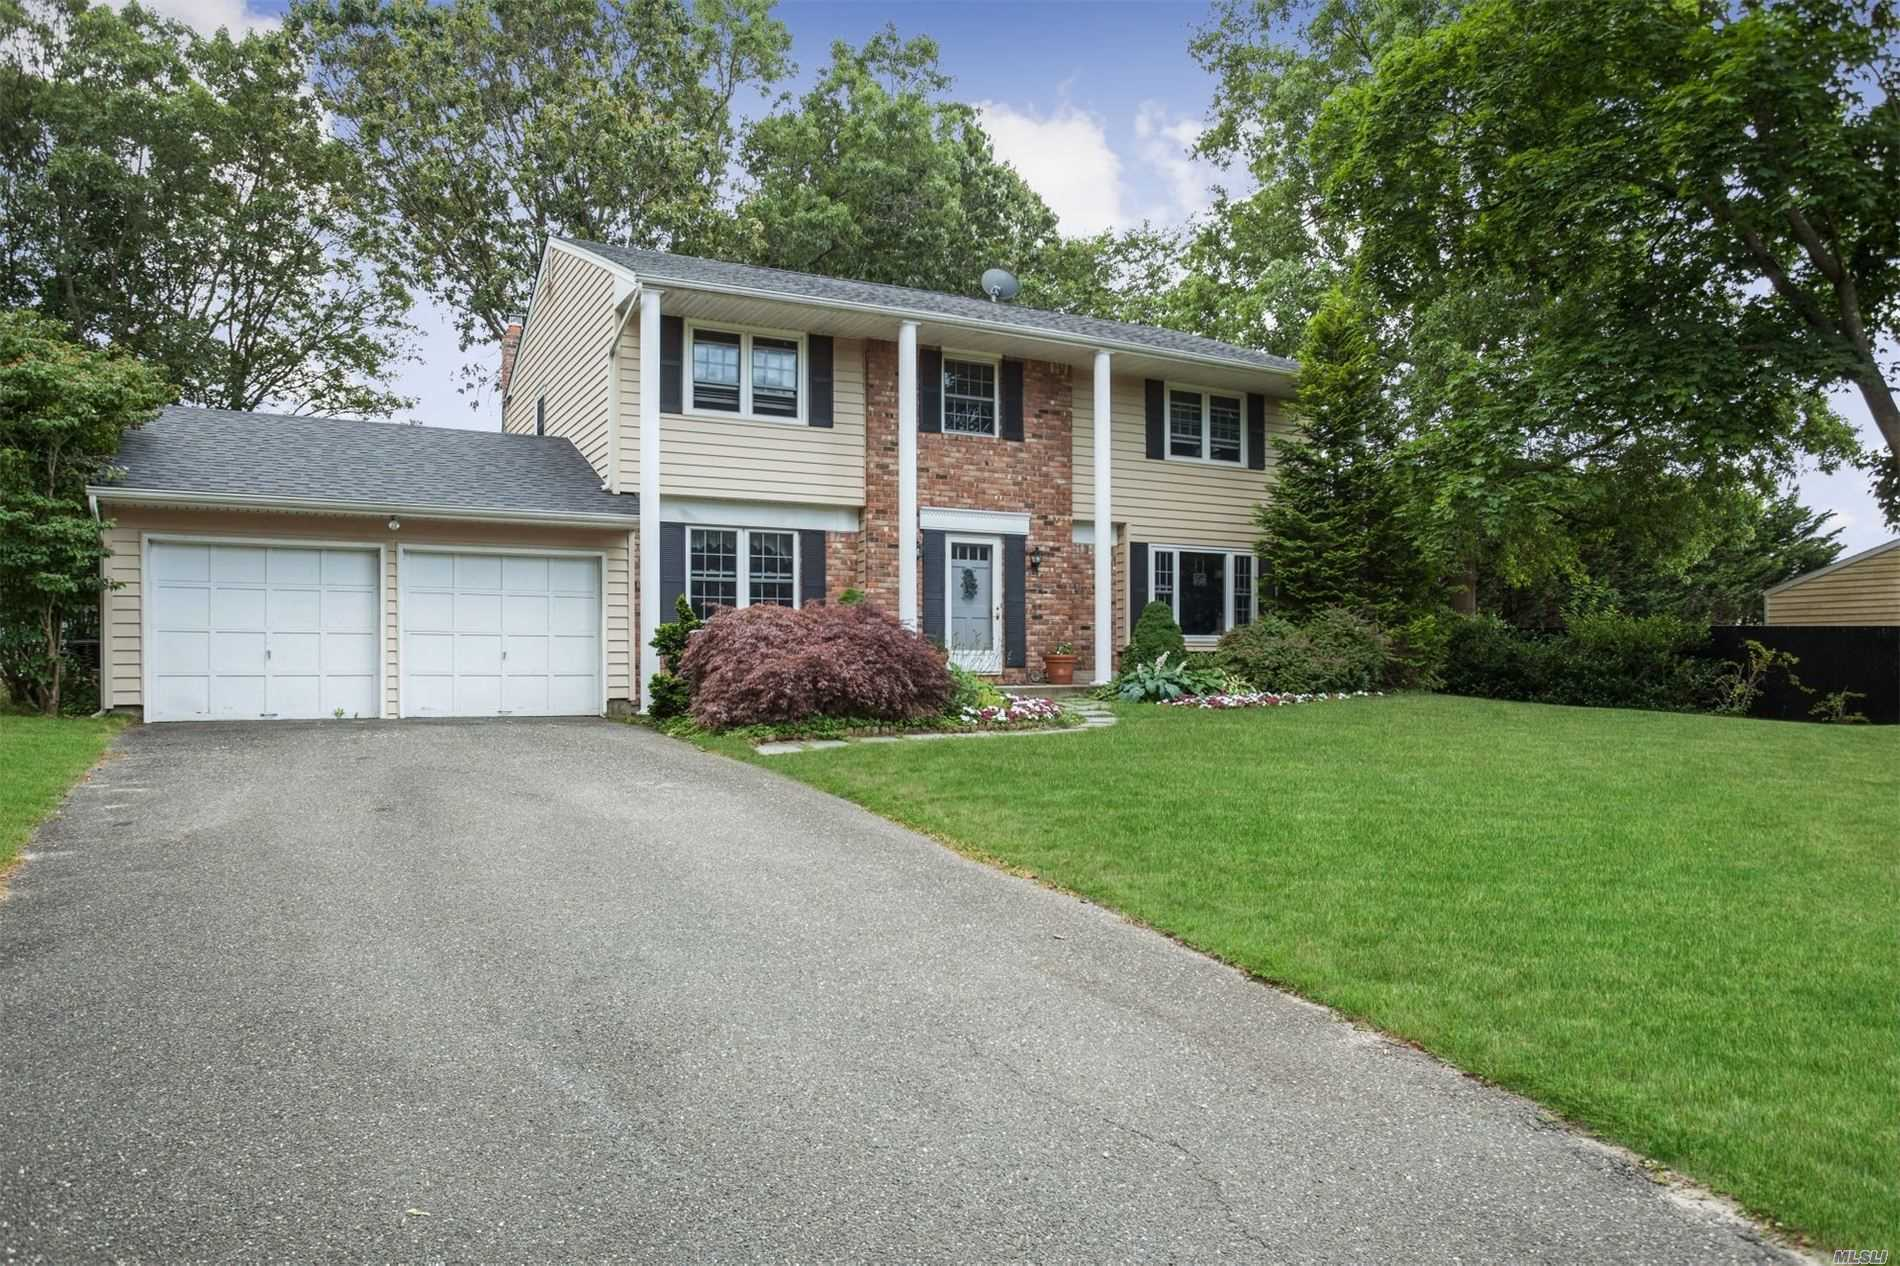 4 Link Ct - S. Setauket, New York